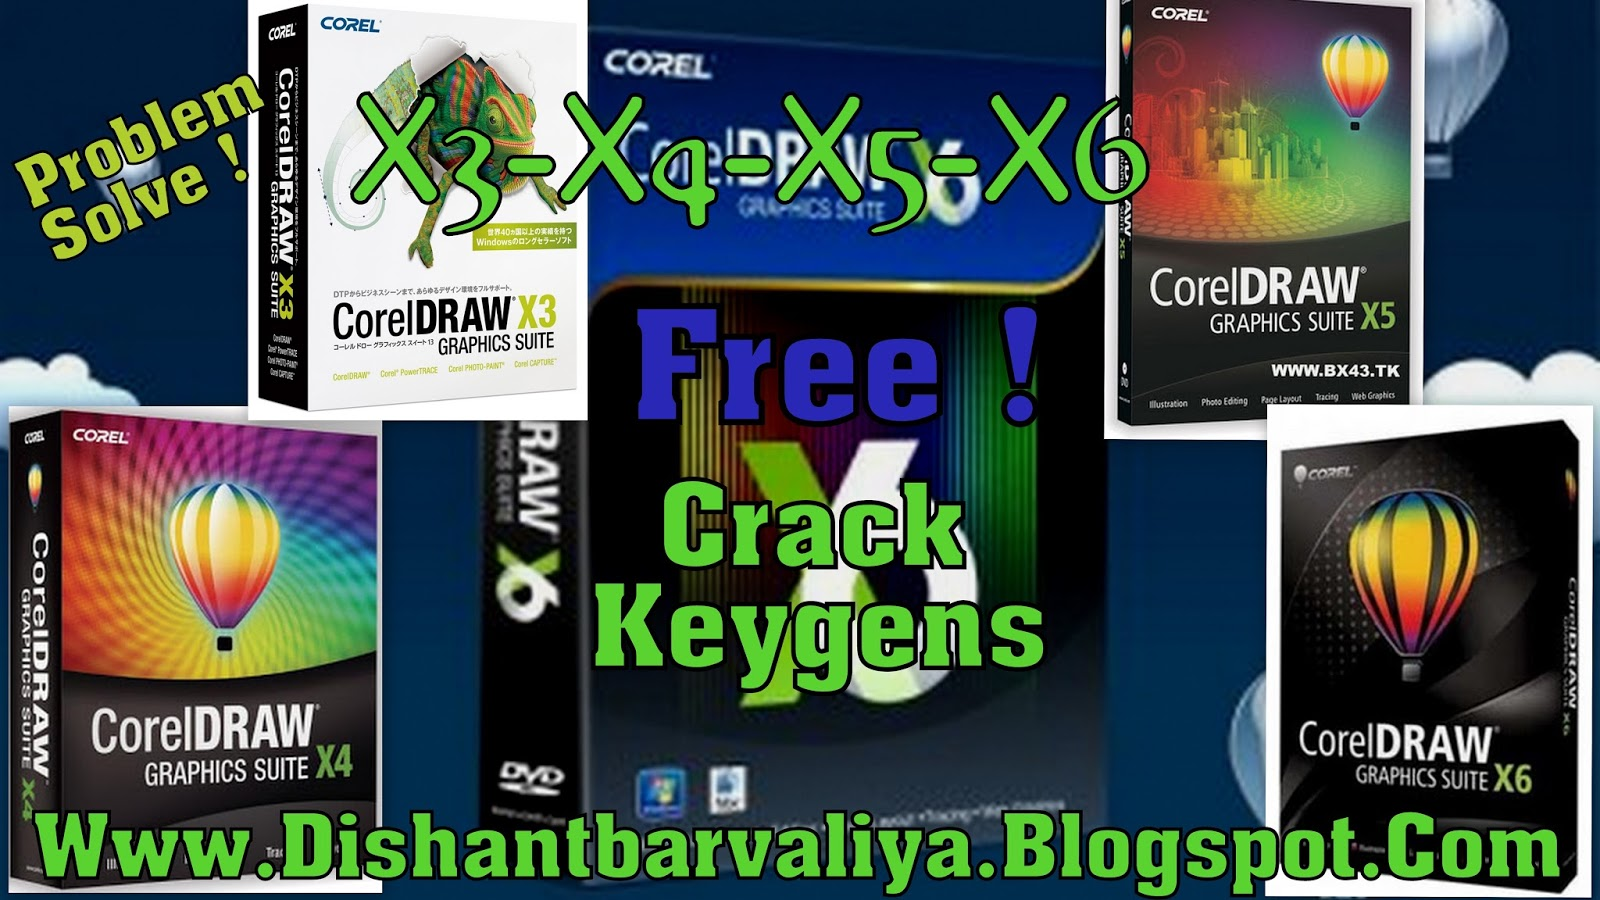 fbb07193a9a6 Corel Draw X5 Keygen Crack patch Final Serial Number . Coral Draw x5 Keygen  papazperiperi.com